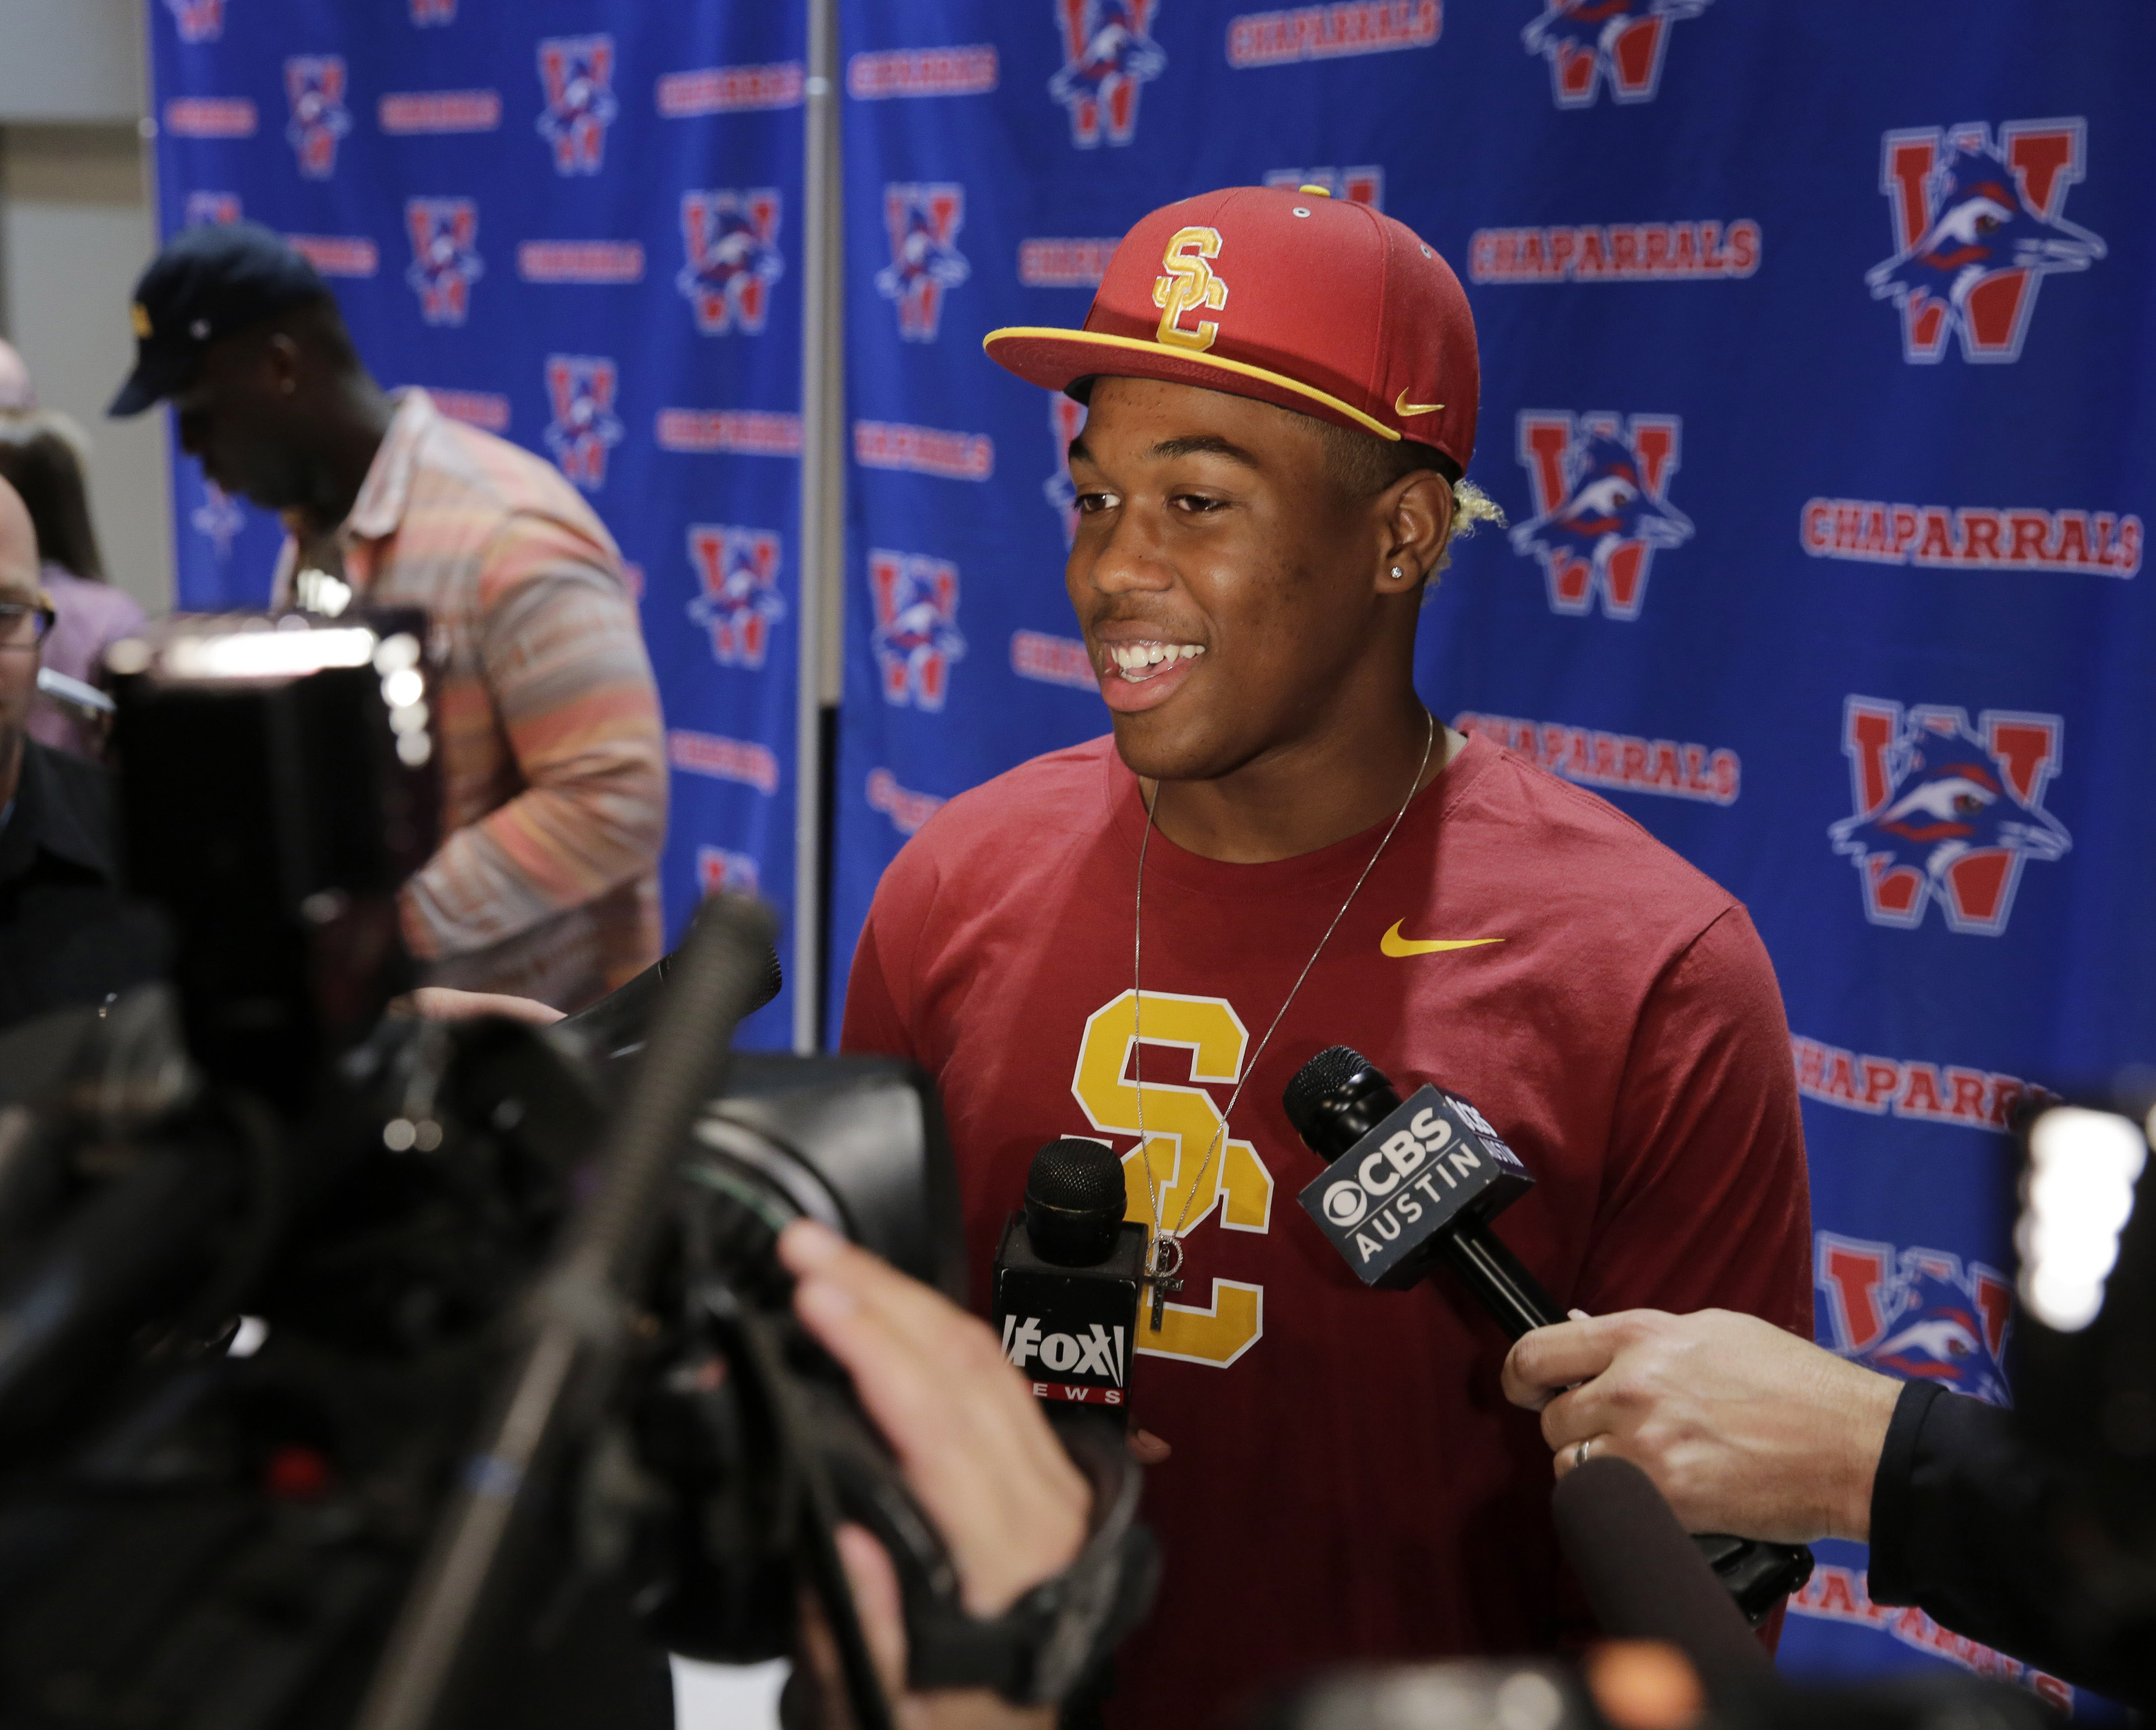 Feb 1, 2017; Austin, TX, USA; Levi Jones announces his commitment to the University of Southern California during National Signing Day at Westlake High School. Mandatory Credit: Erich Schlegel-USA TODAY Sports